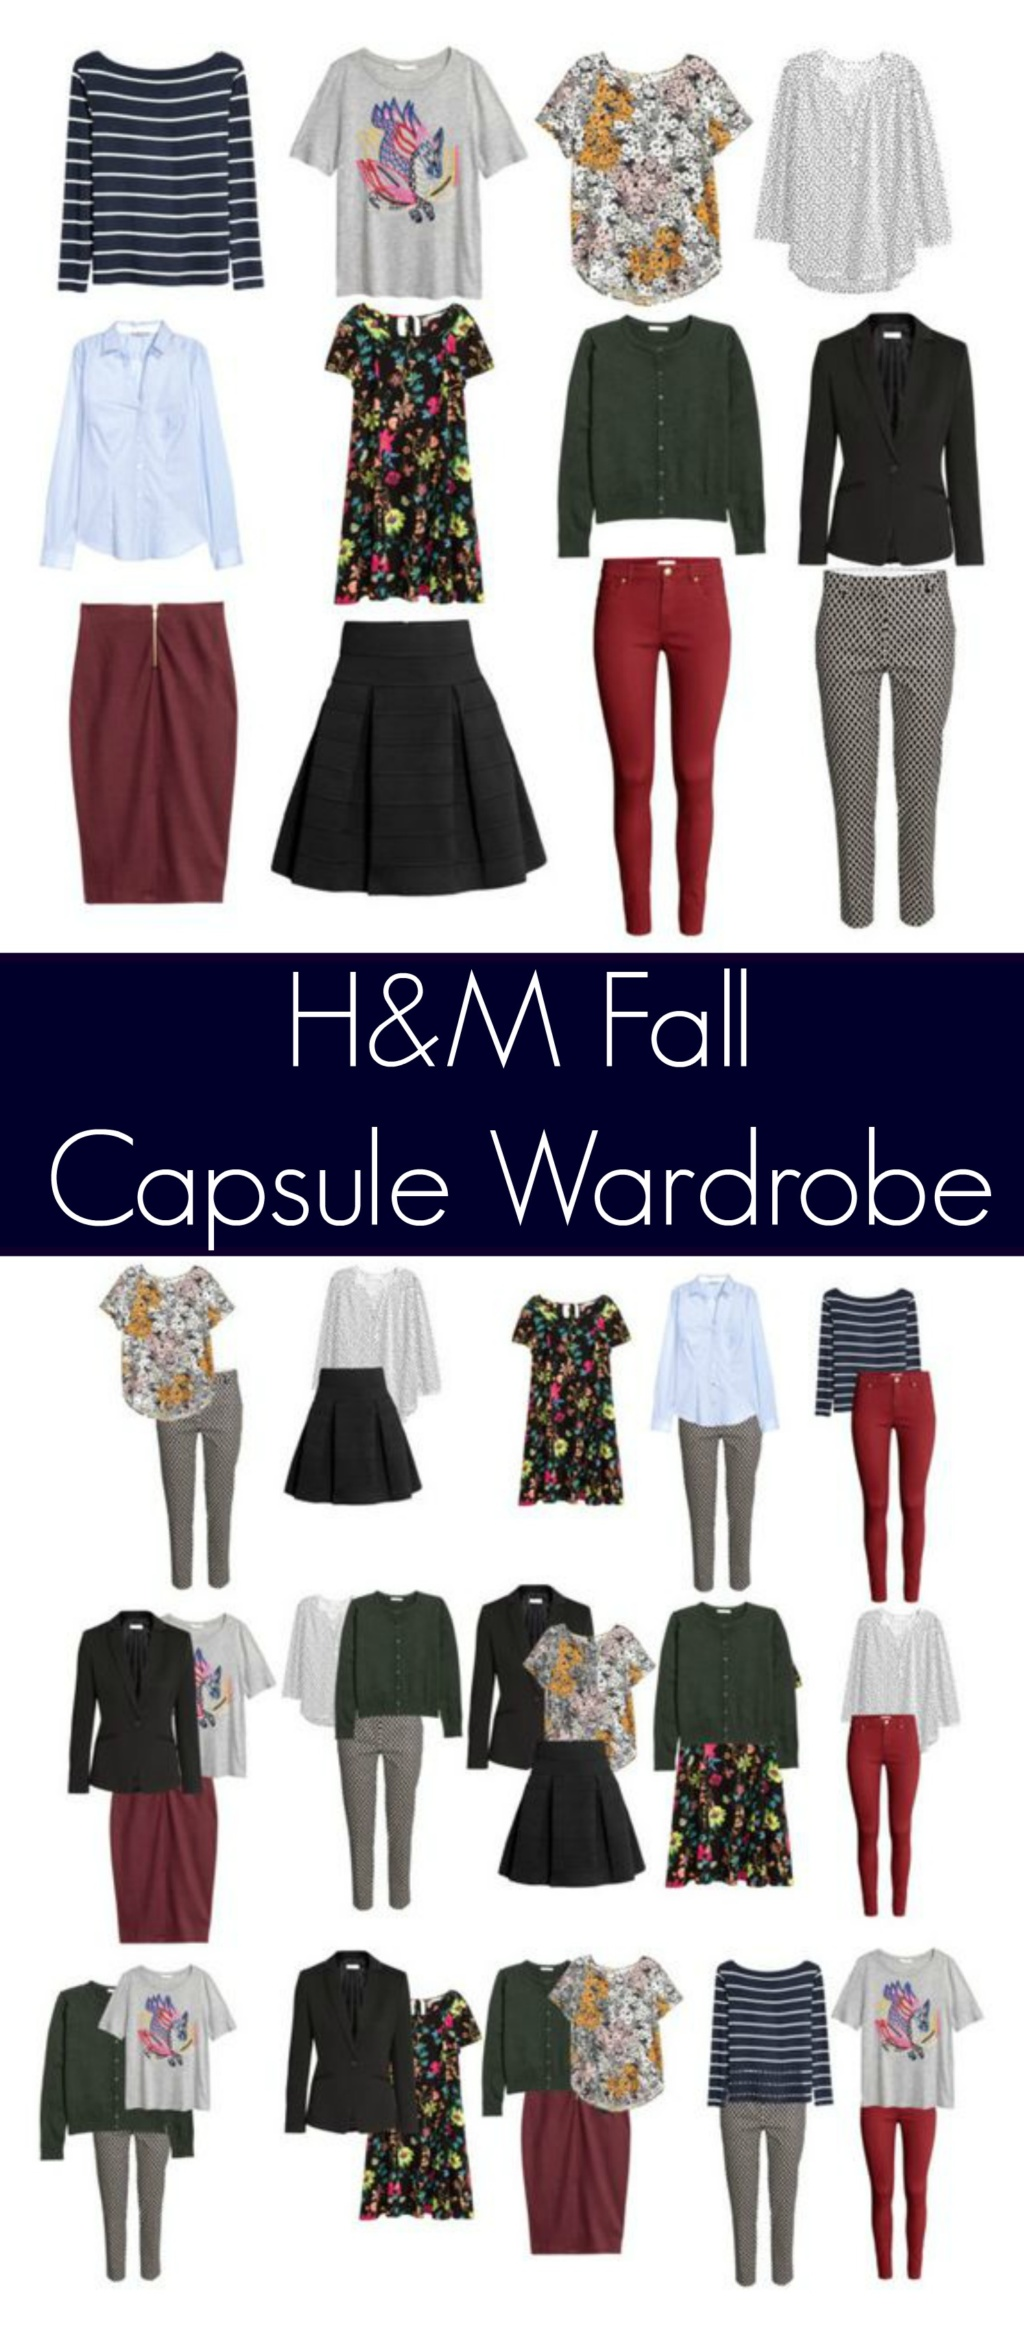 Fall Capsule Wardrobe from H&M